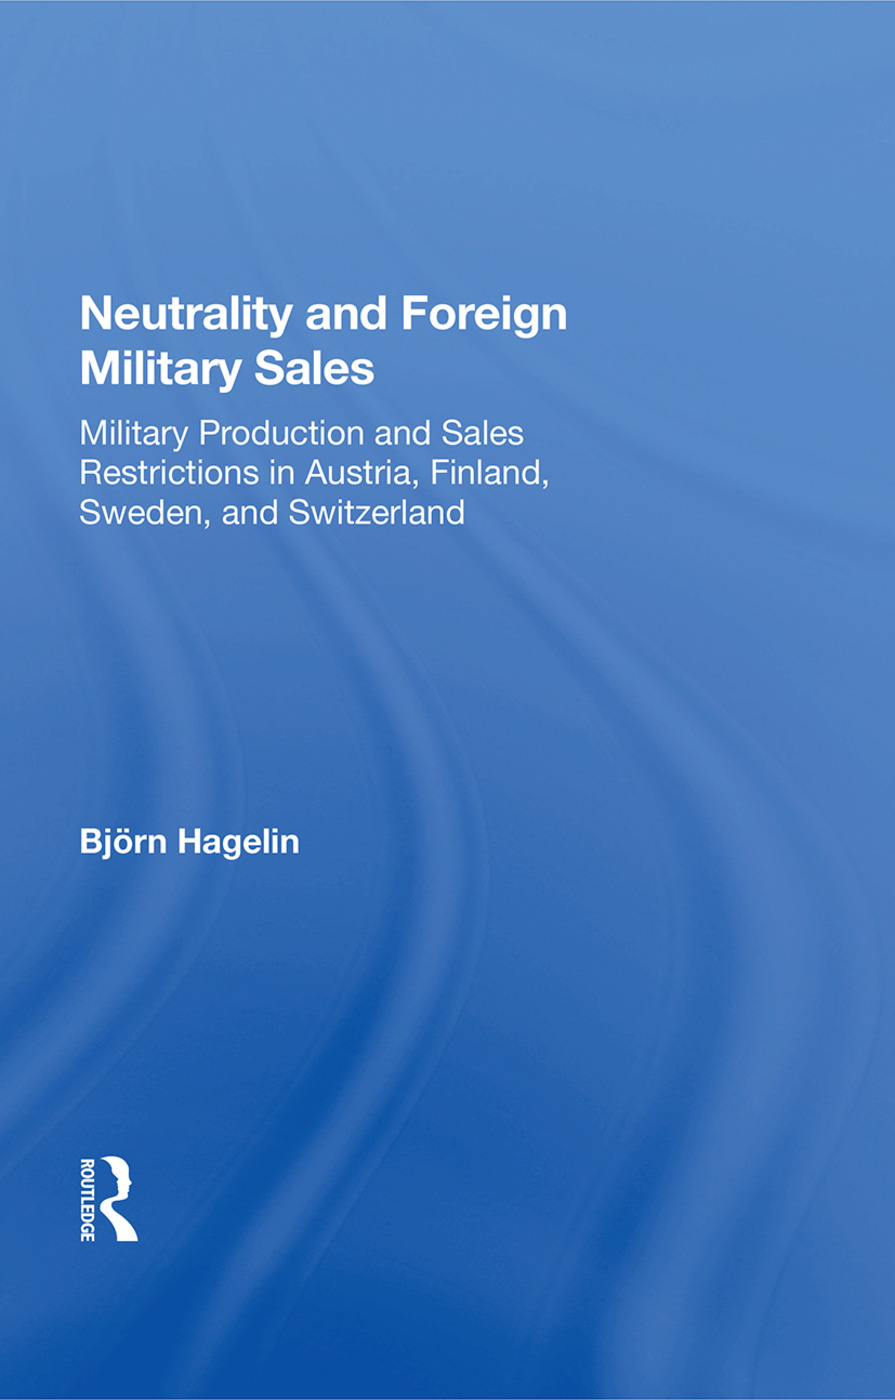 Neutrality And Foreign Military Sales: Military Production And Sales Restrictions In Austria, Finland, Sweden, And Switzerland, 1st Edition (Paperback) book cover